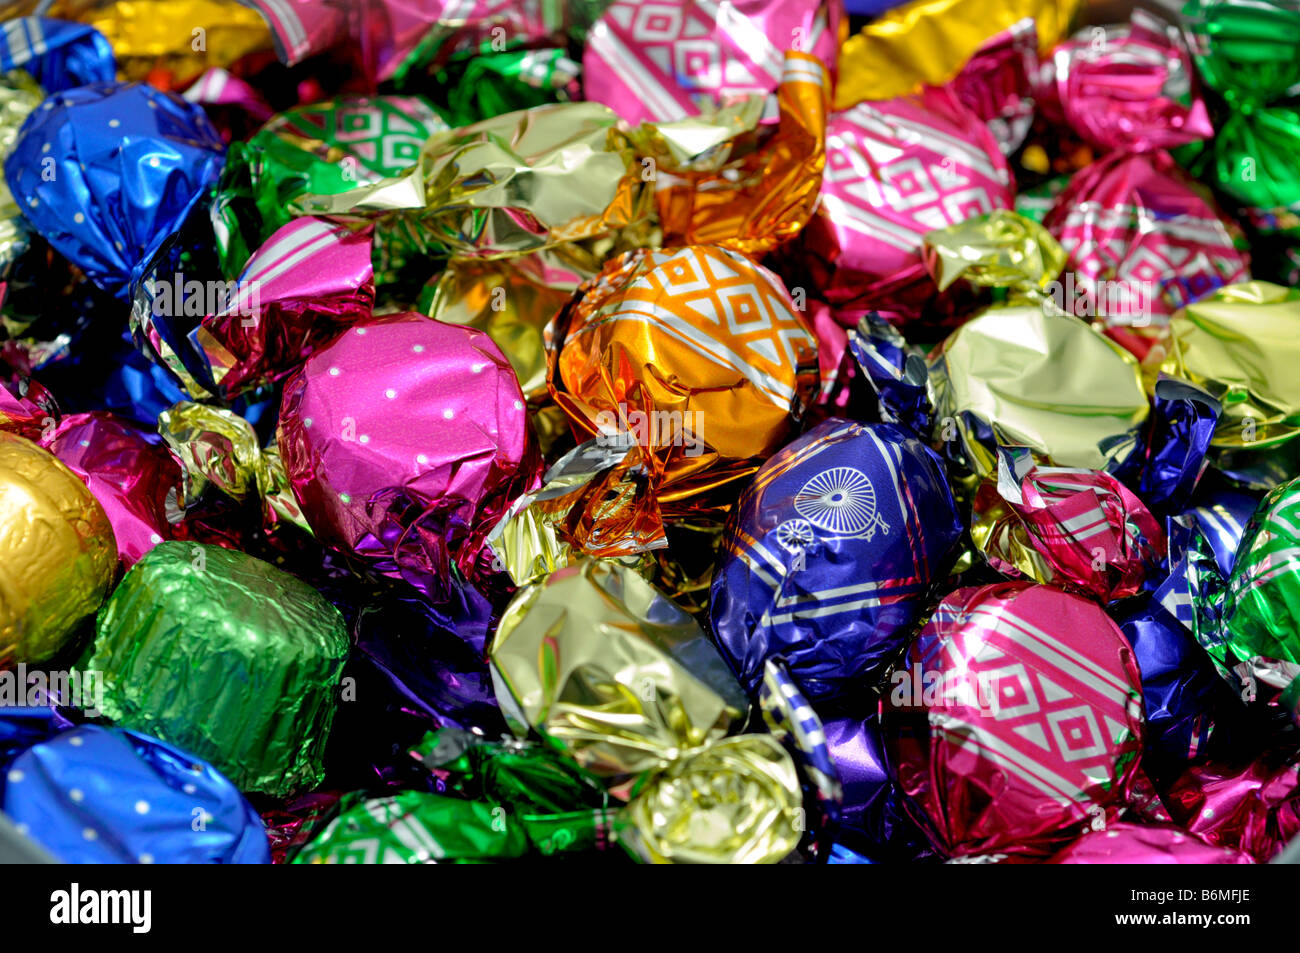 Sweets in Wrappers - Stock Image